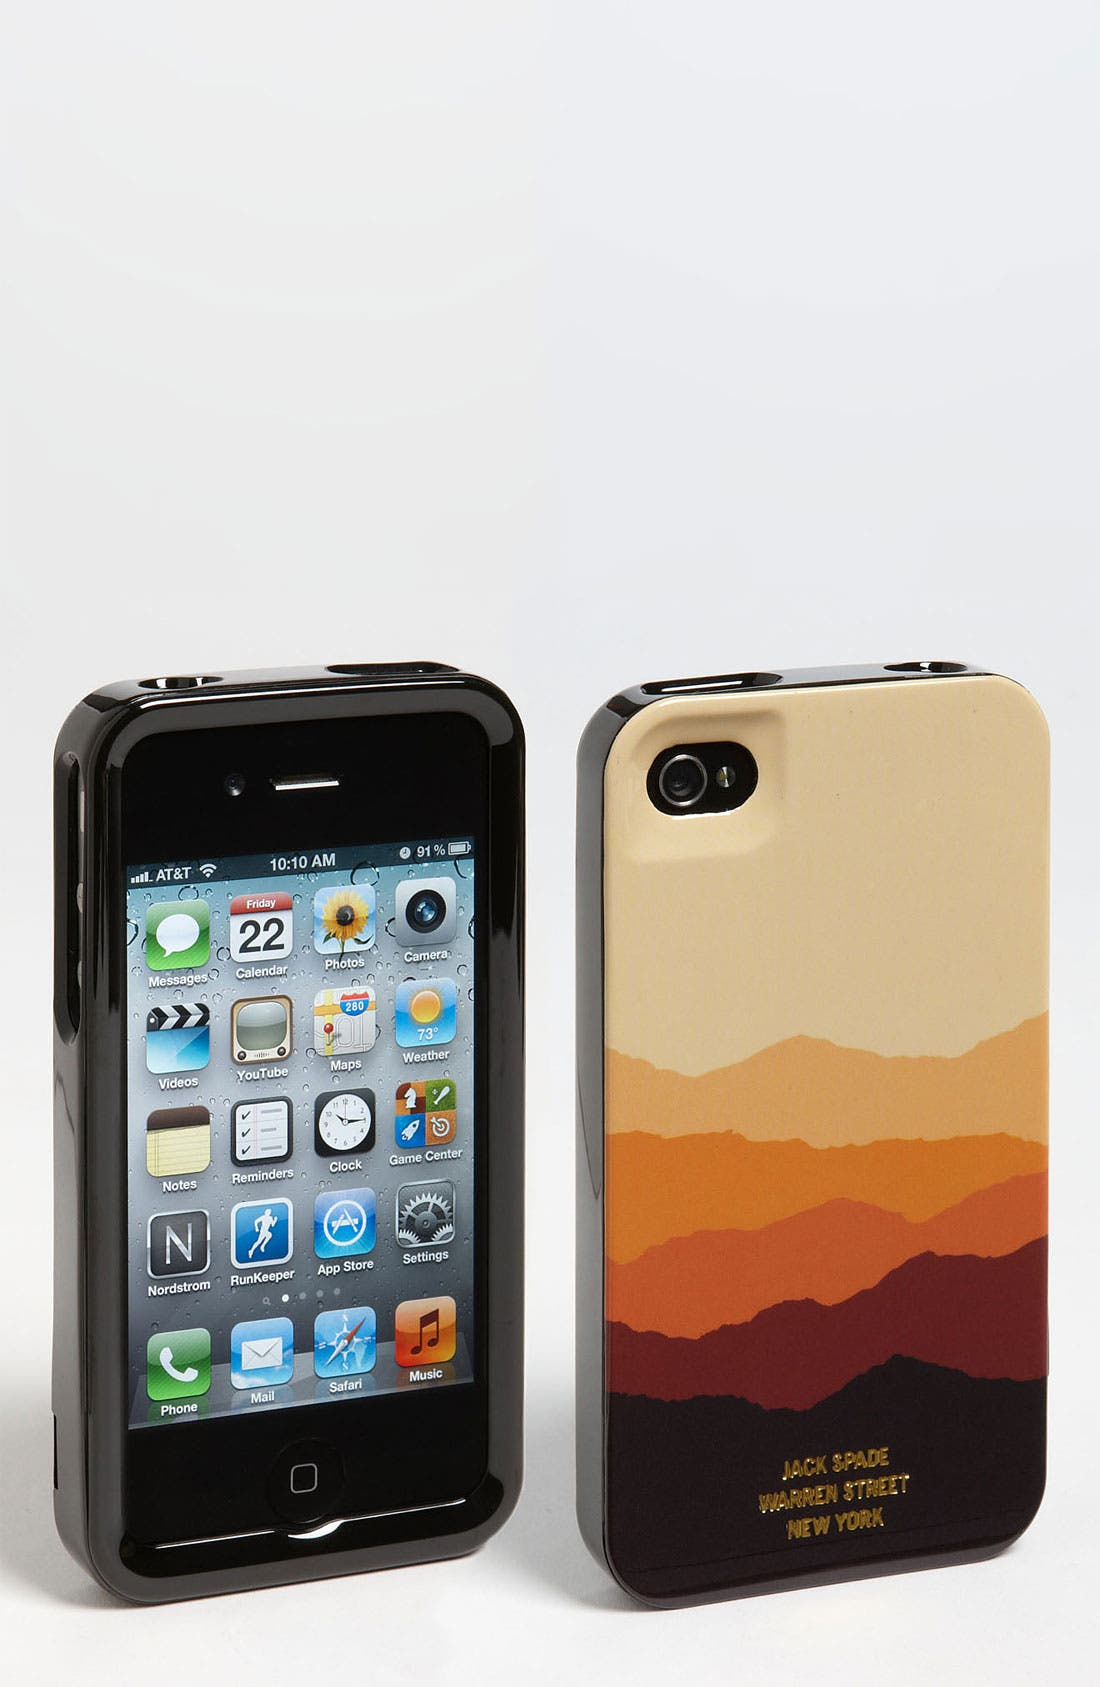 Alternate Image 1 Selected - Jack Spade 'Mountain' iPhone 4 & 4S Case